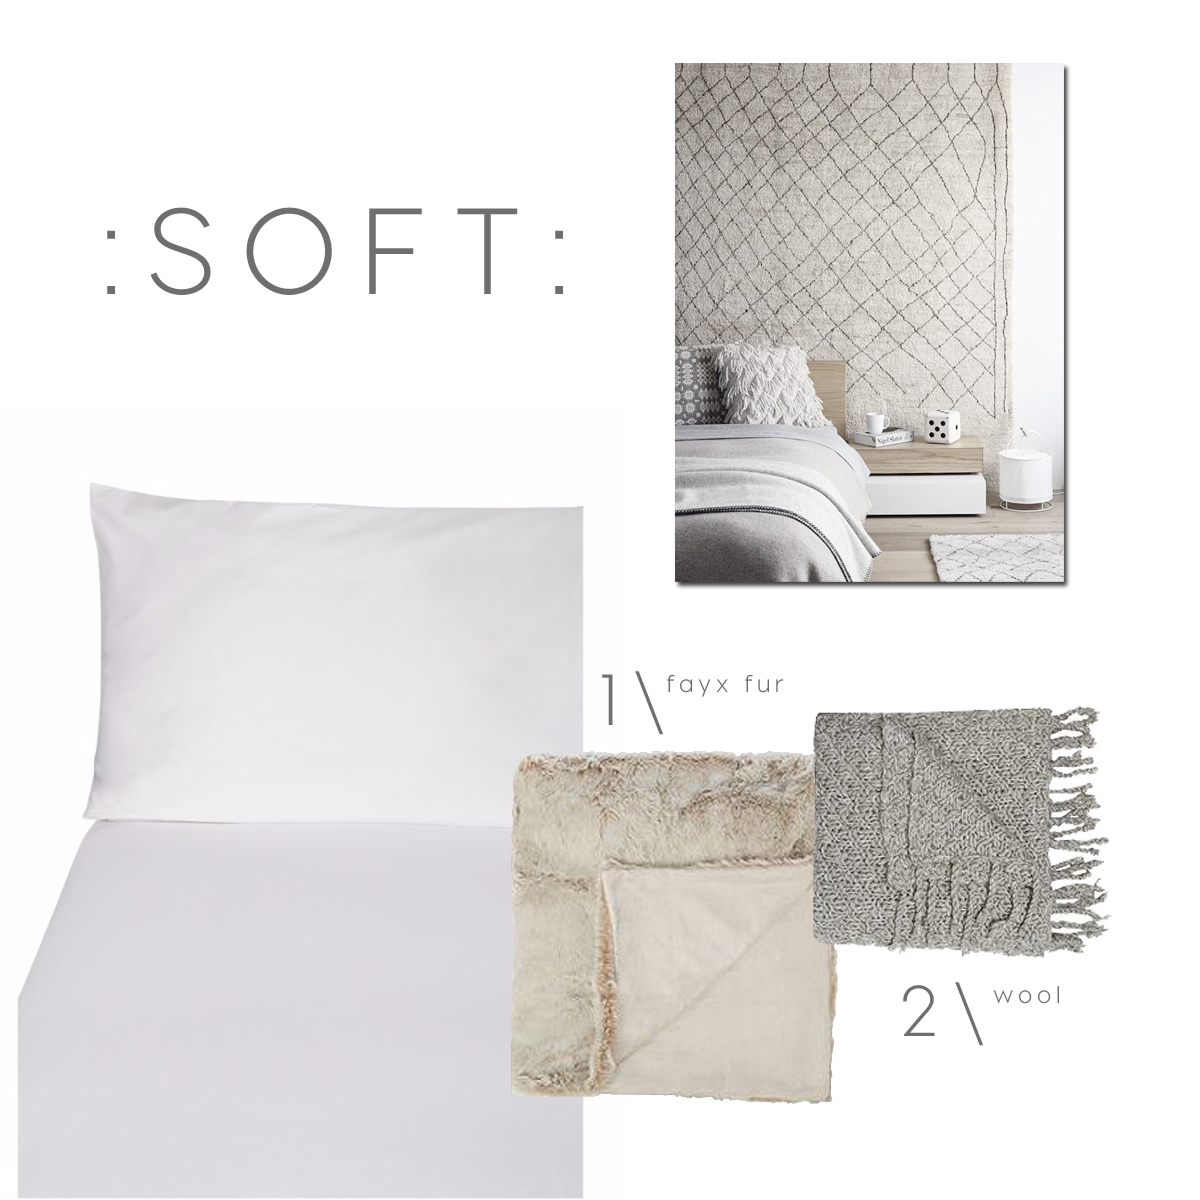 SHOP IT | 4 styles for a white linen bed | ITALIANBARK